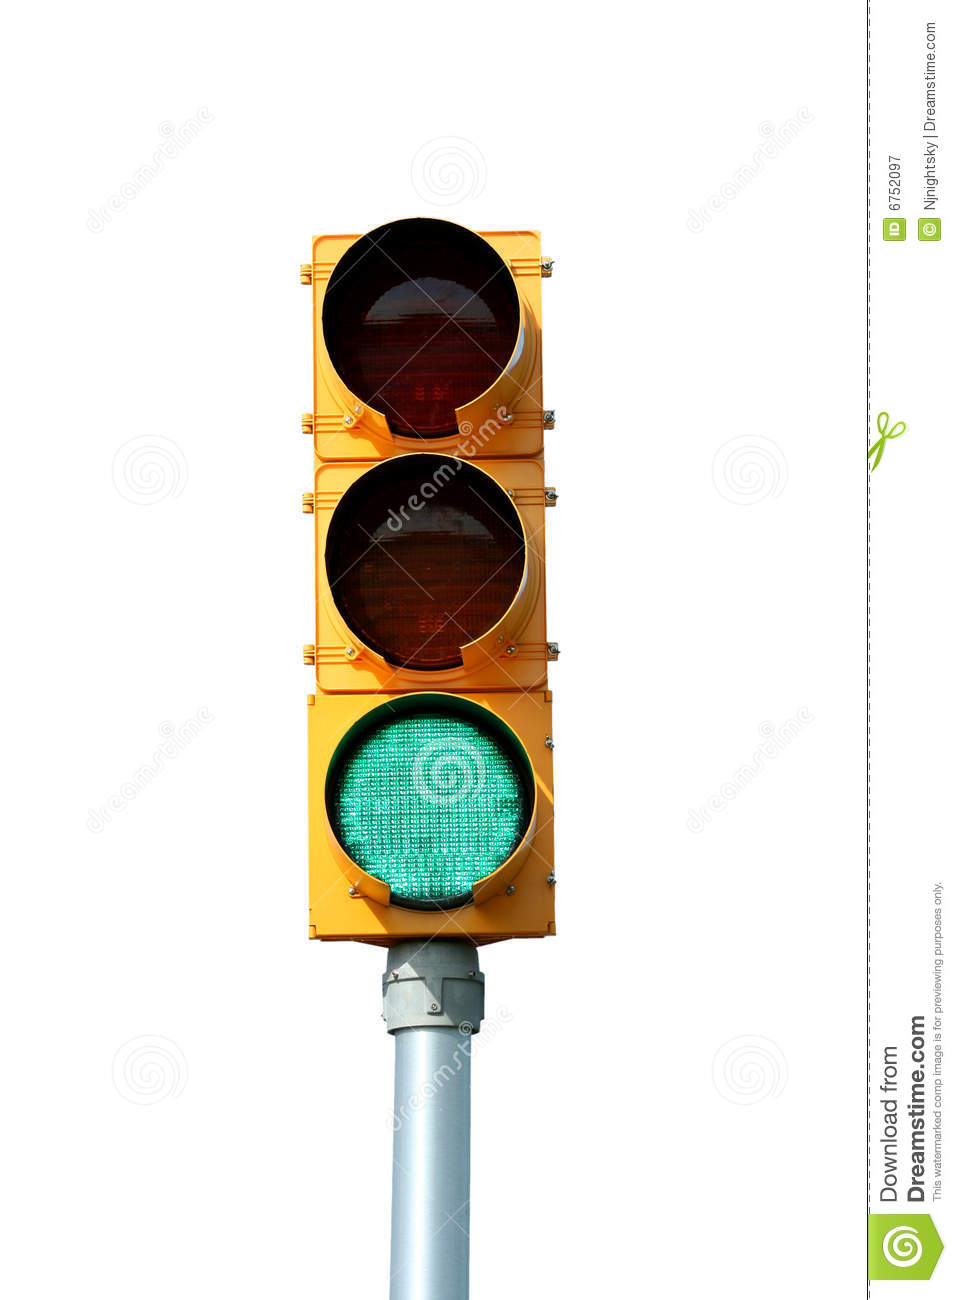 Isolated Green traffic signal light